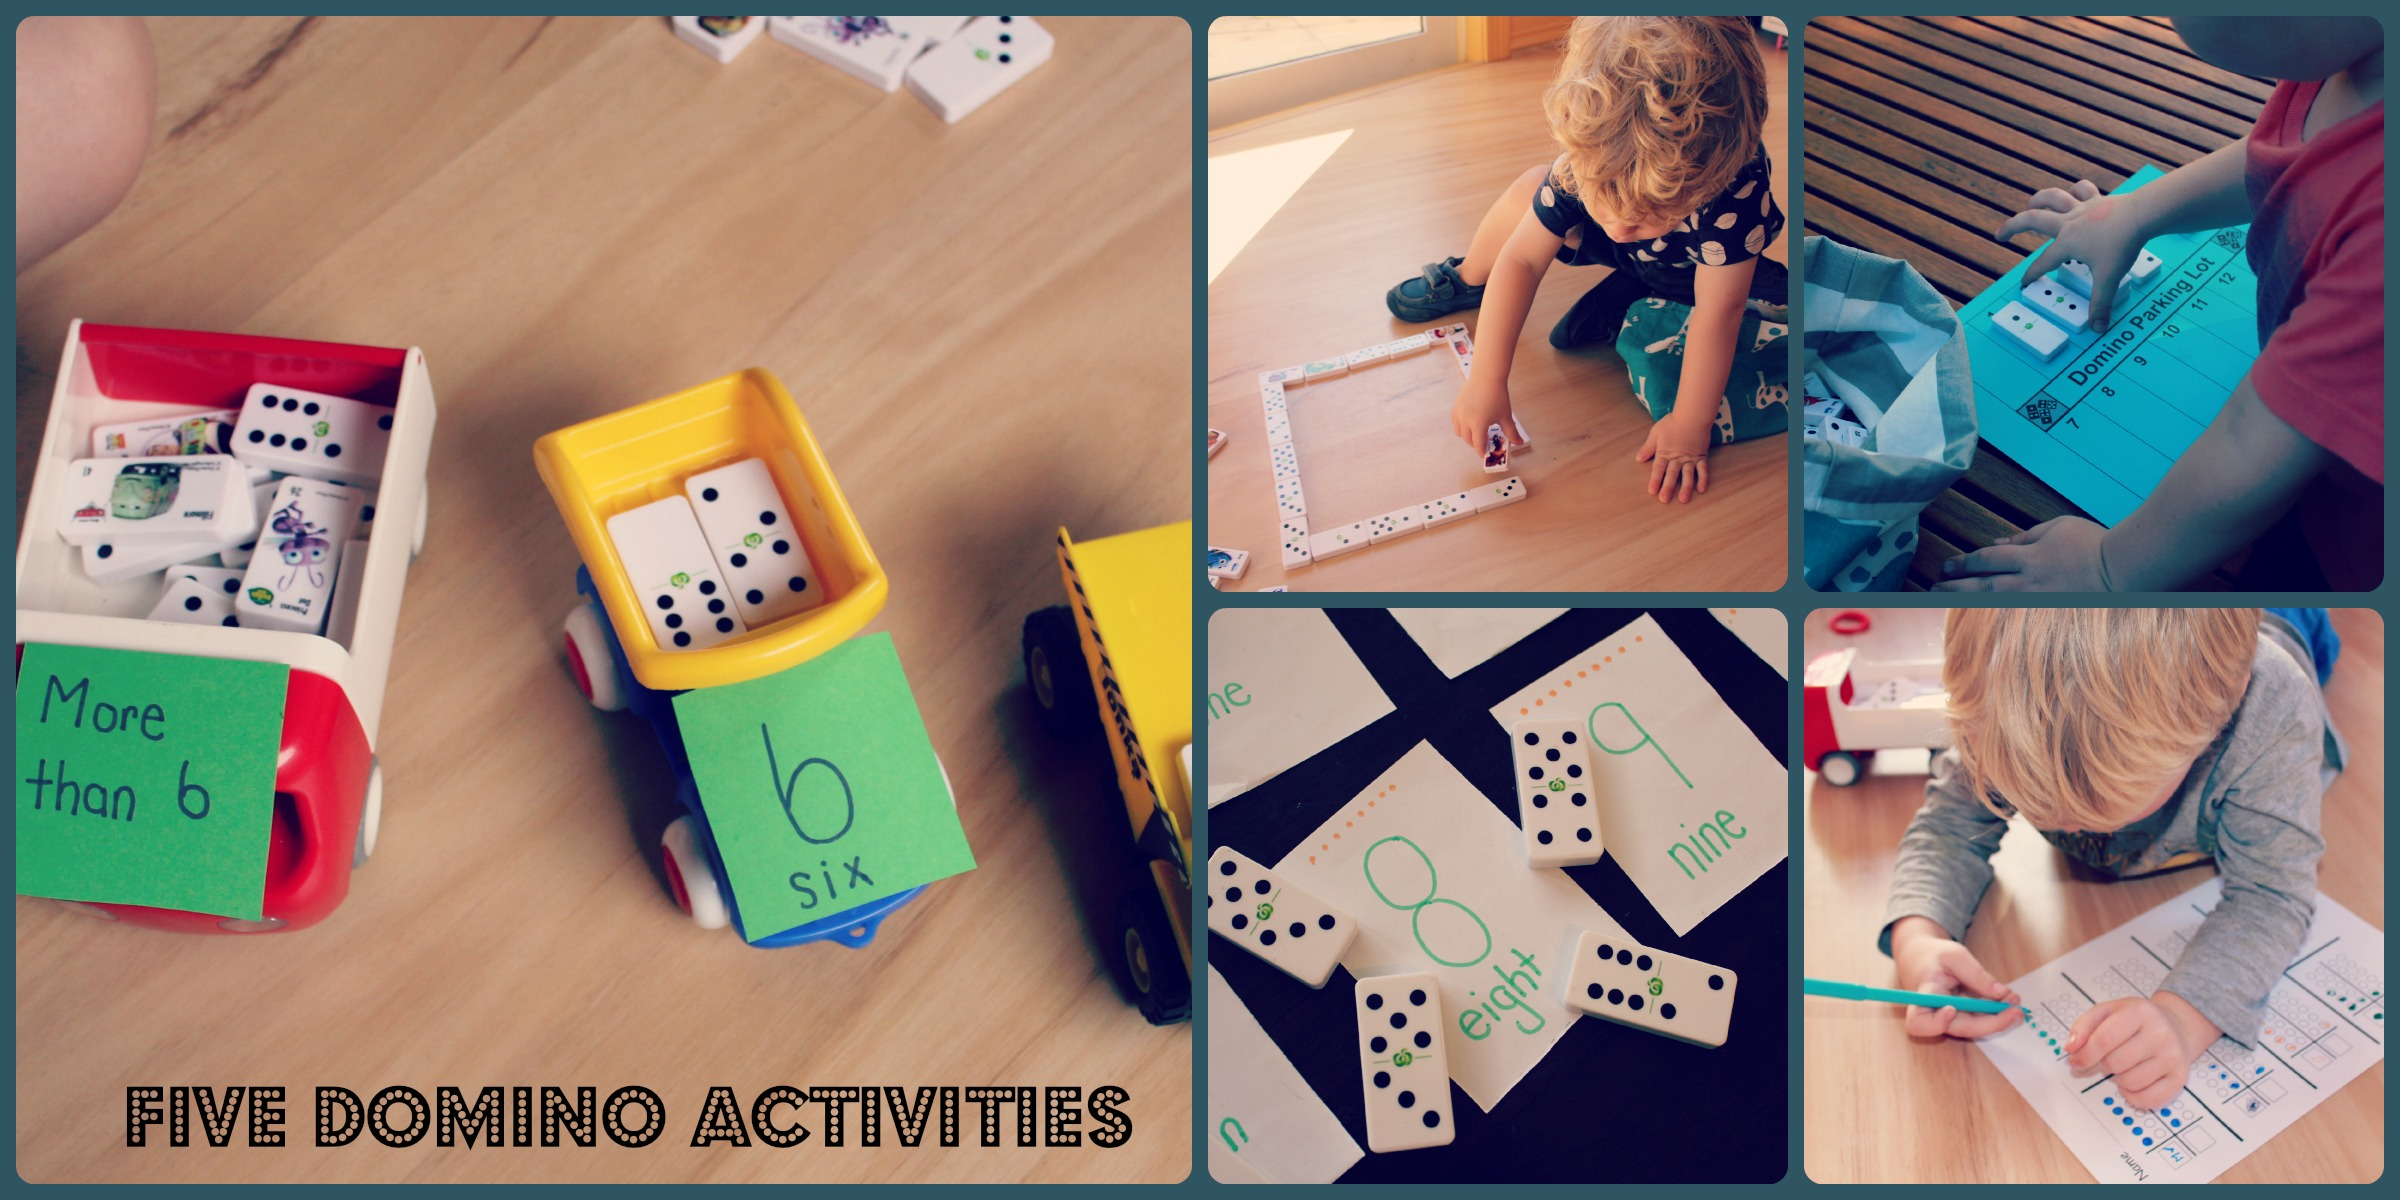 Five domino activities by Life on Wallace